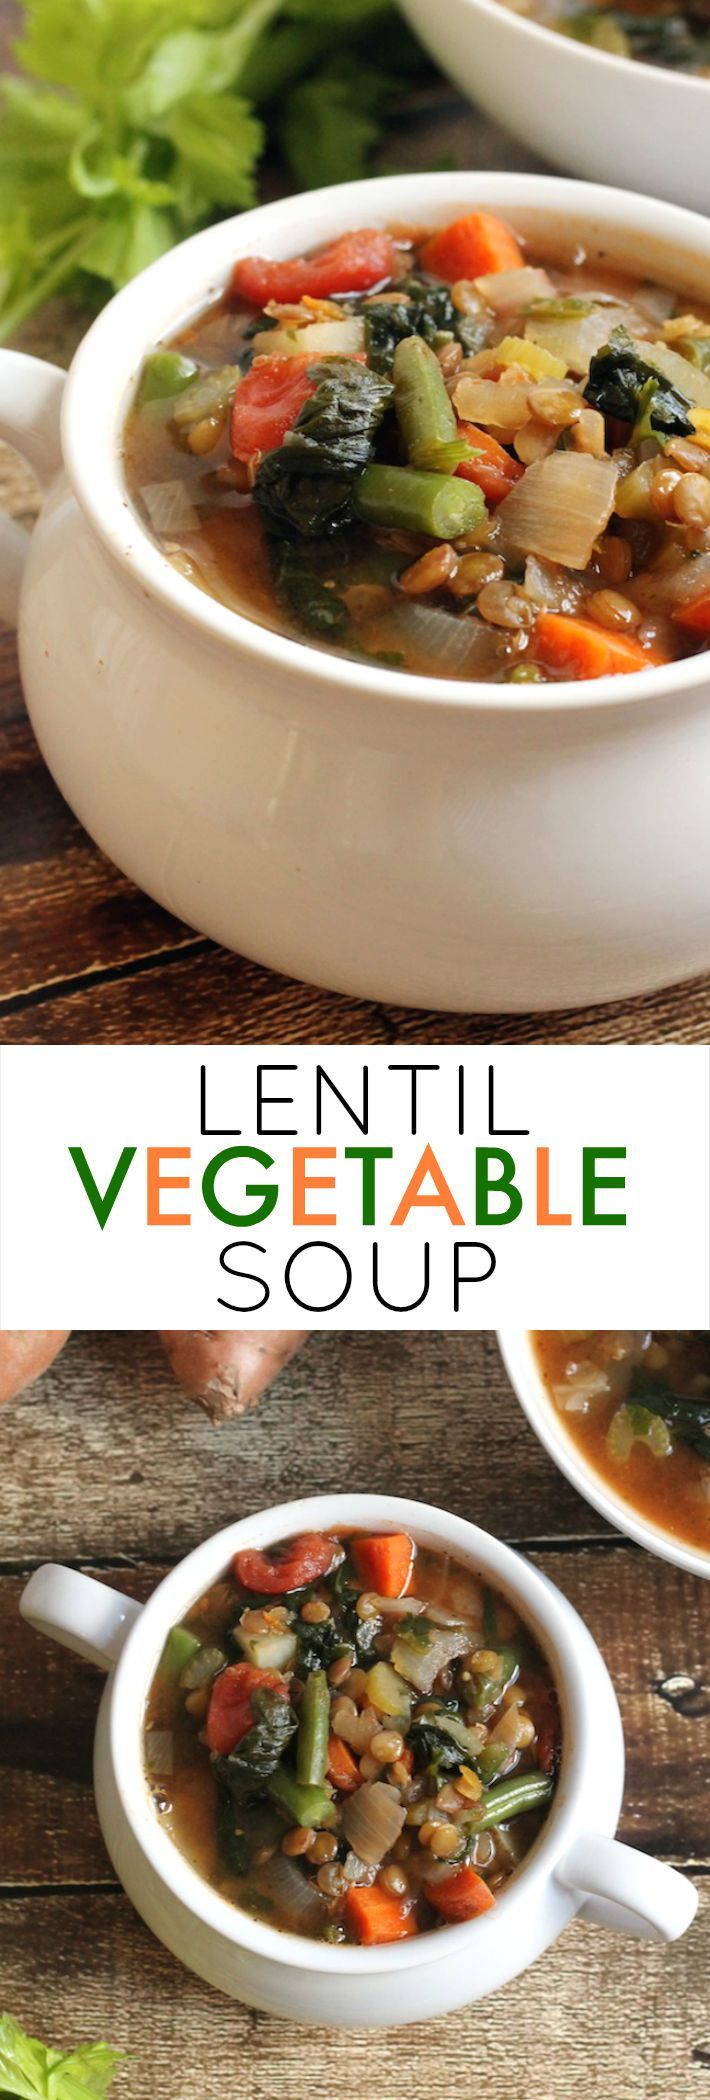 Lentil vegetable soup, Vegetable soups and Lentils on Pinterest